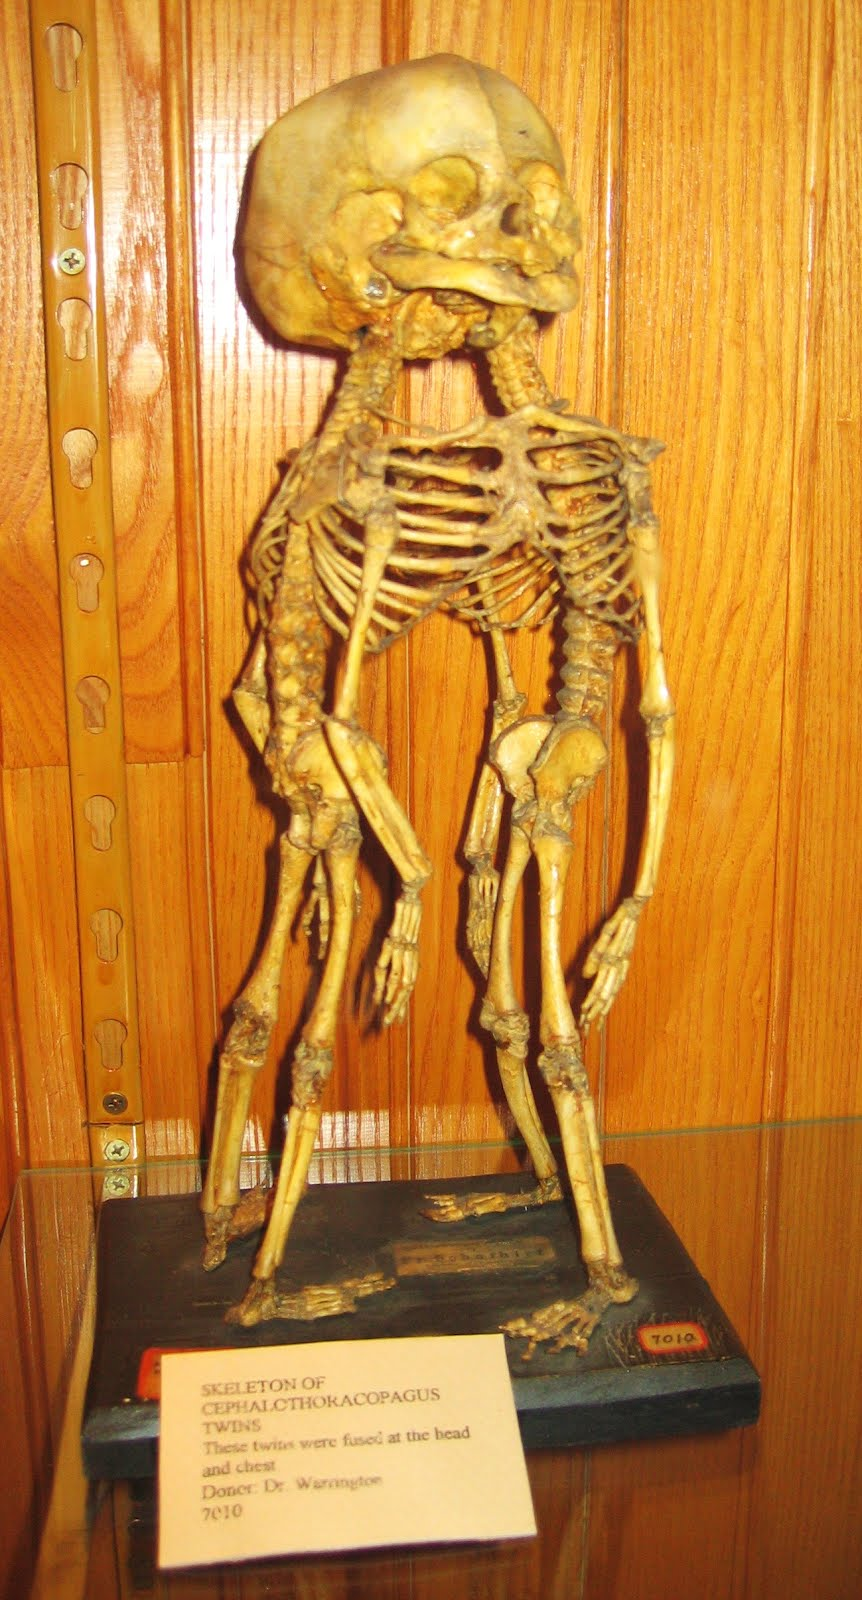 Strangest Museums, Mutter Museum, Philadelphia, USA, Siamese human skeletons